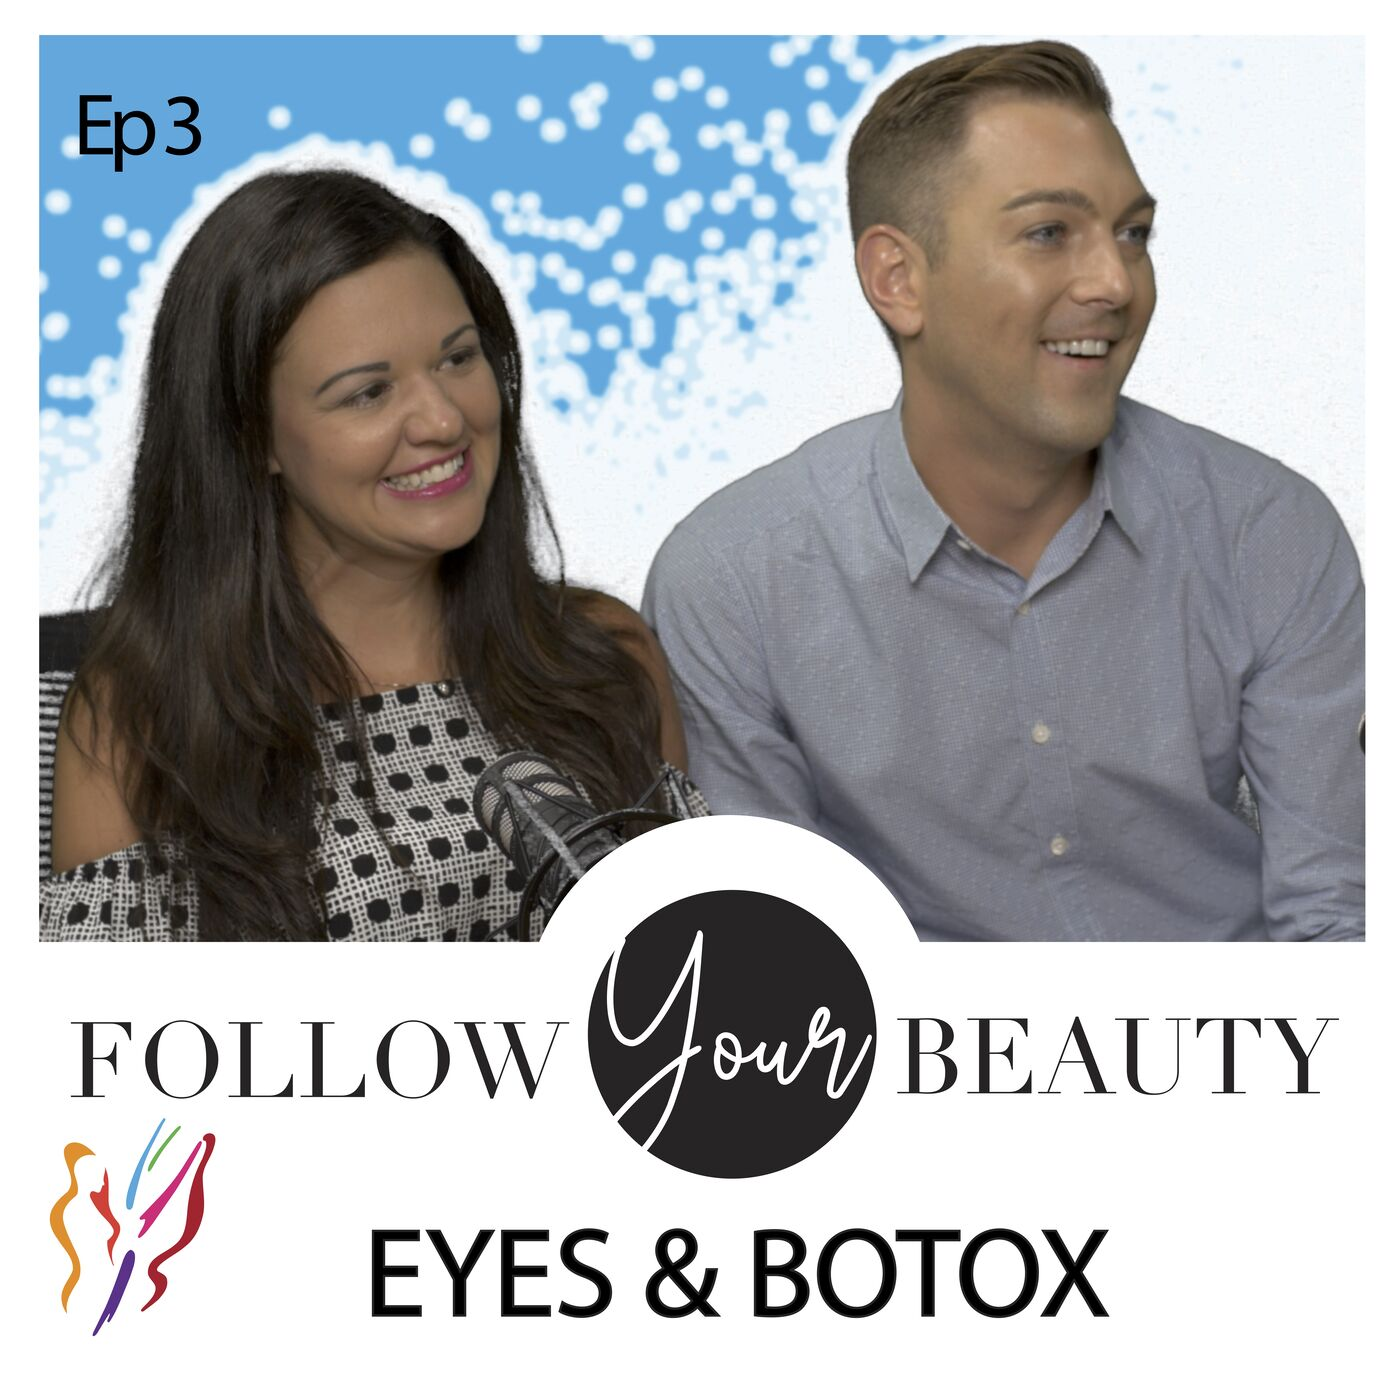 Follow Your Beauty - One Procedure At A Time!